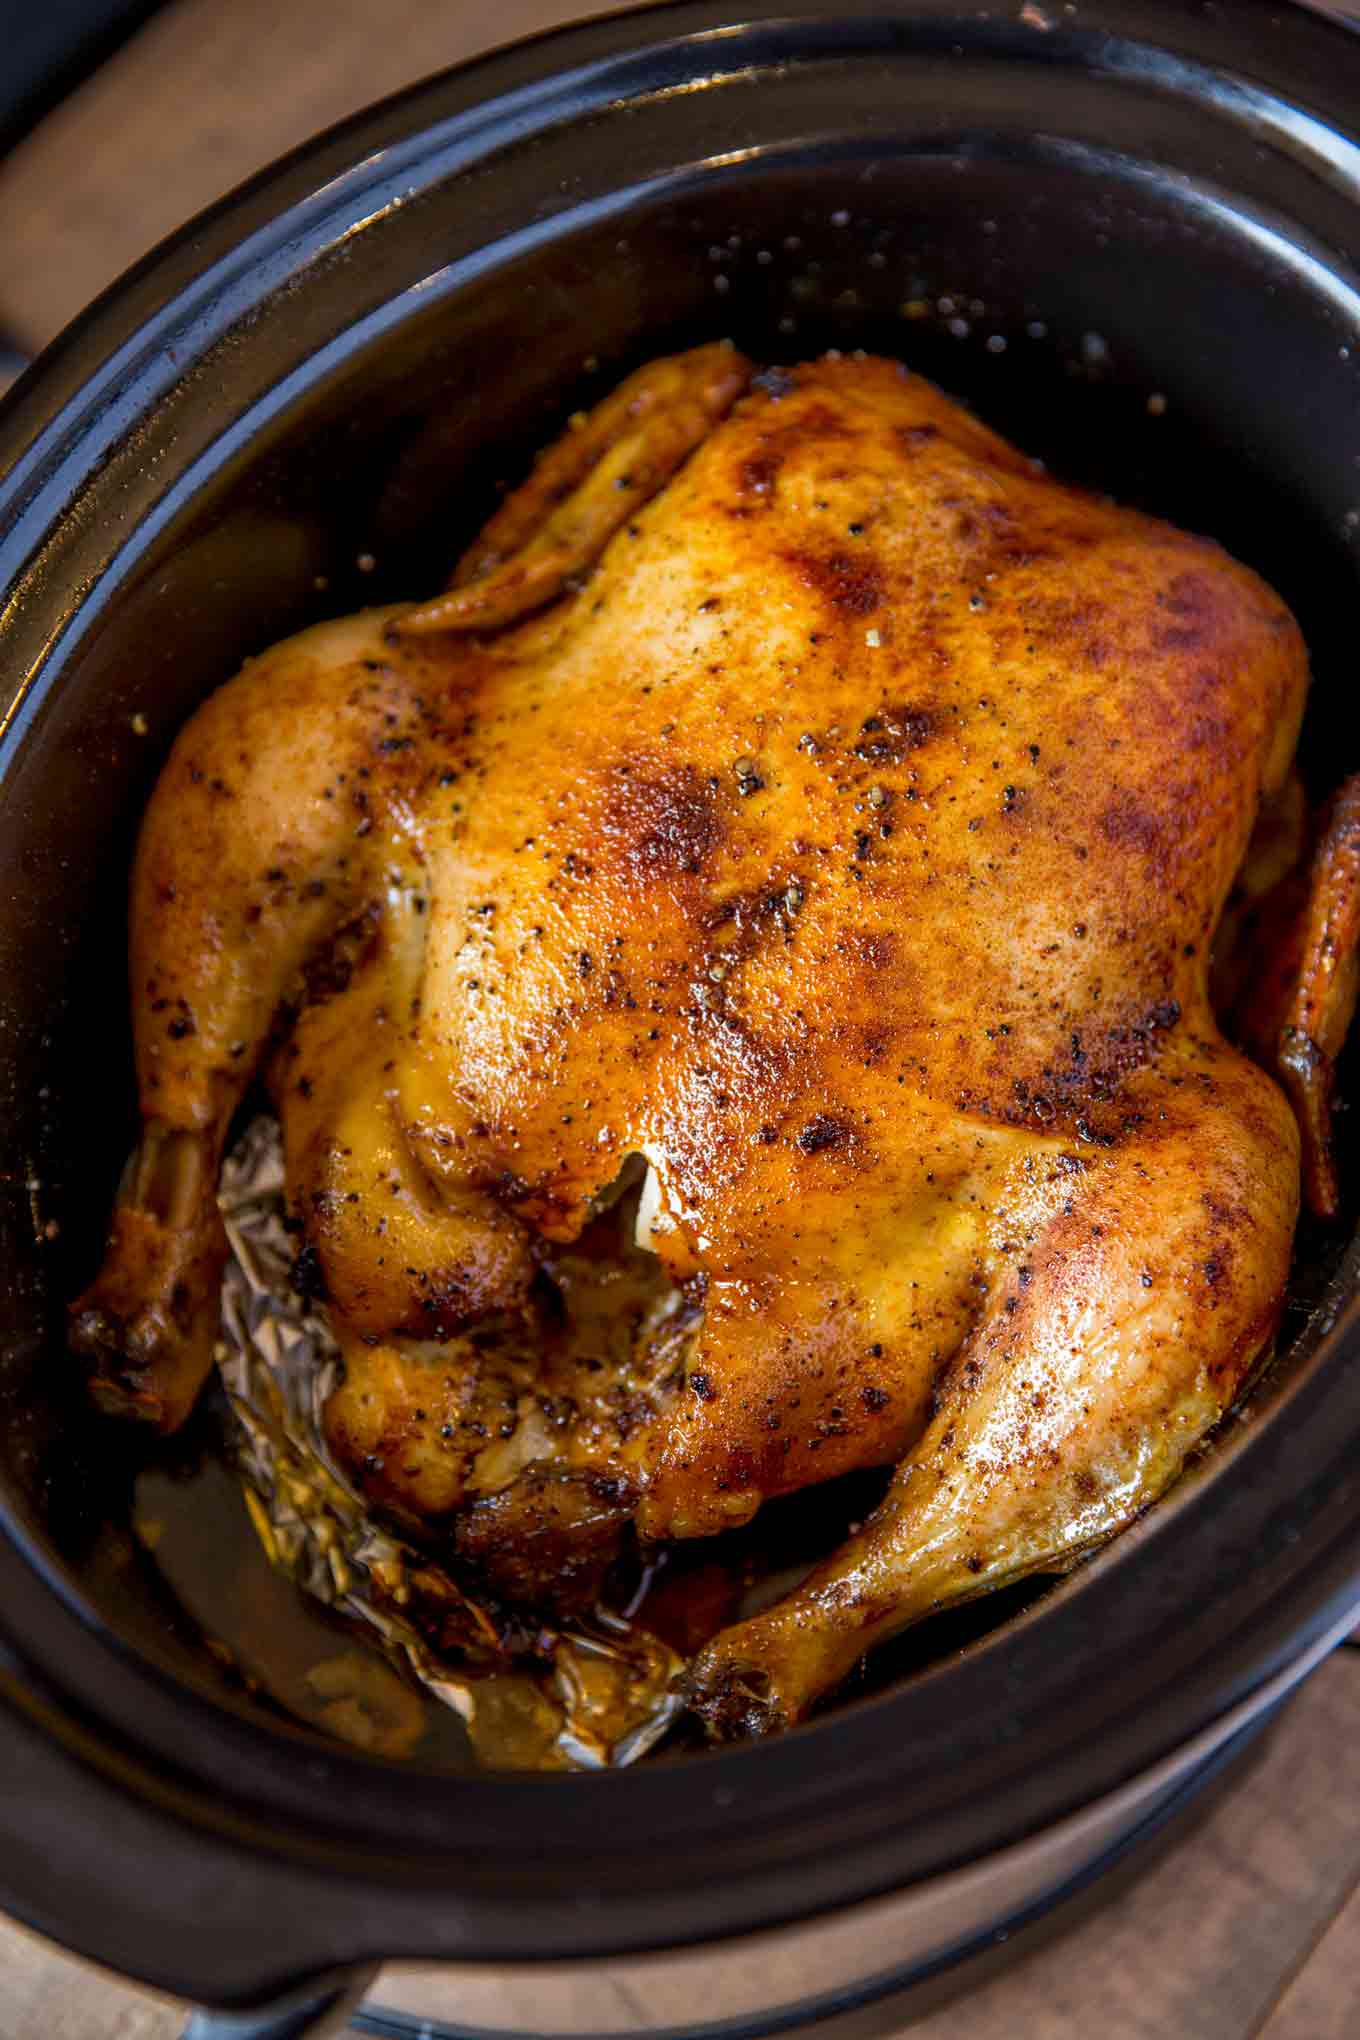 Need some fresh ideas for chicken dinner? Toss chicken into the slow cooker, set it and forget it with these delicious recipes like slow cooker chicken soup, slow cooker chicken curry, slow cooker butter chicken and more tasty Crock Pot dinners.